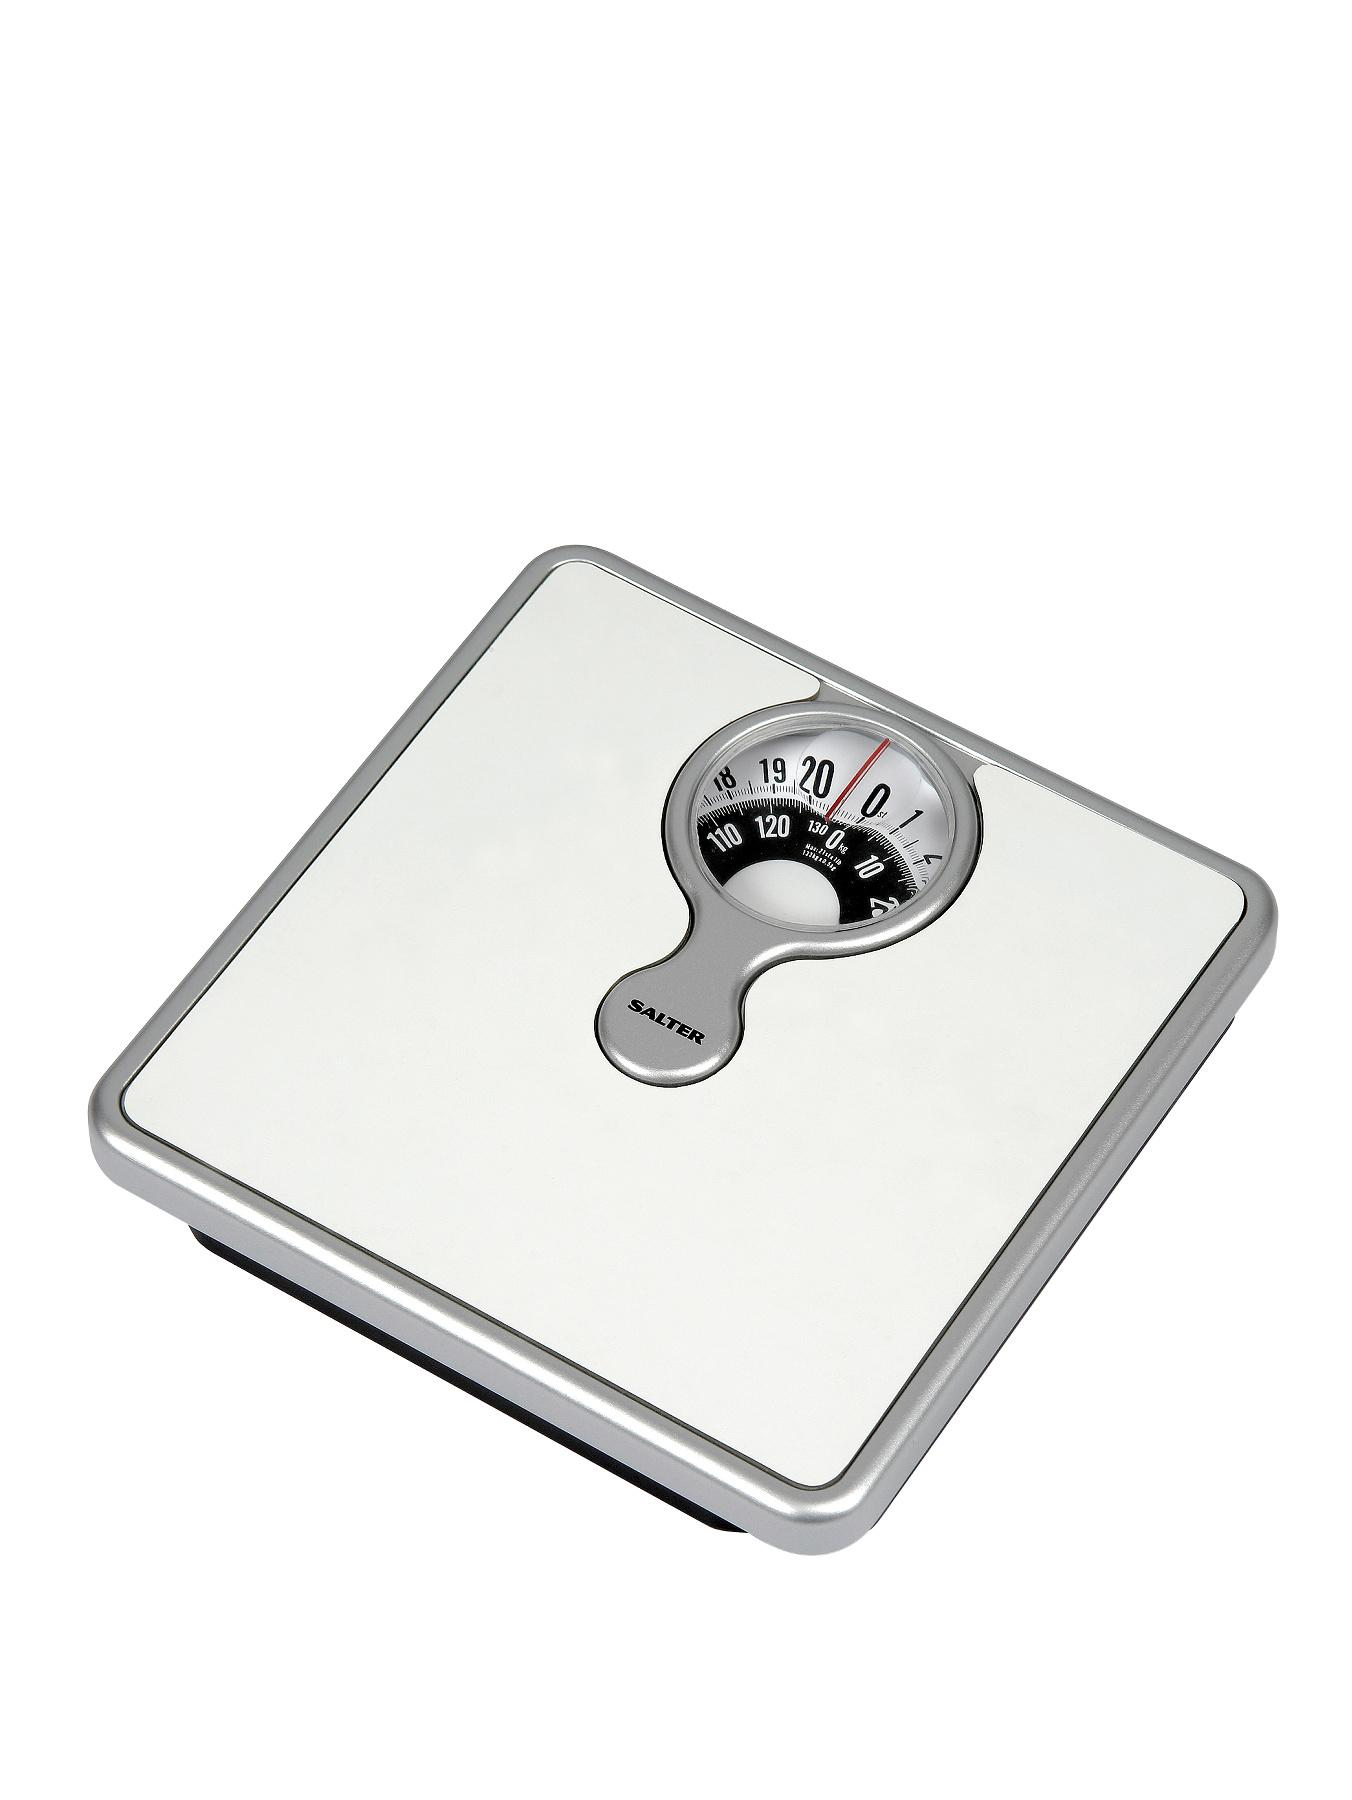 Salter Compact Mechanical Scales